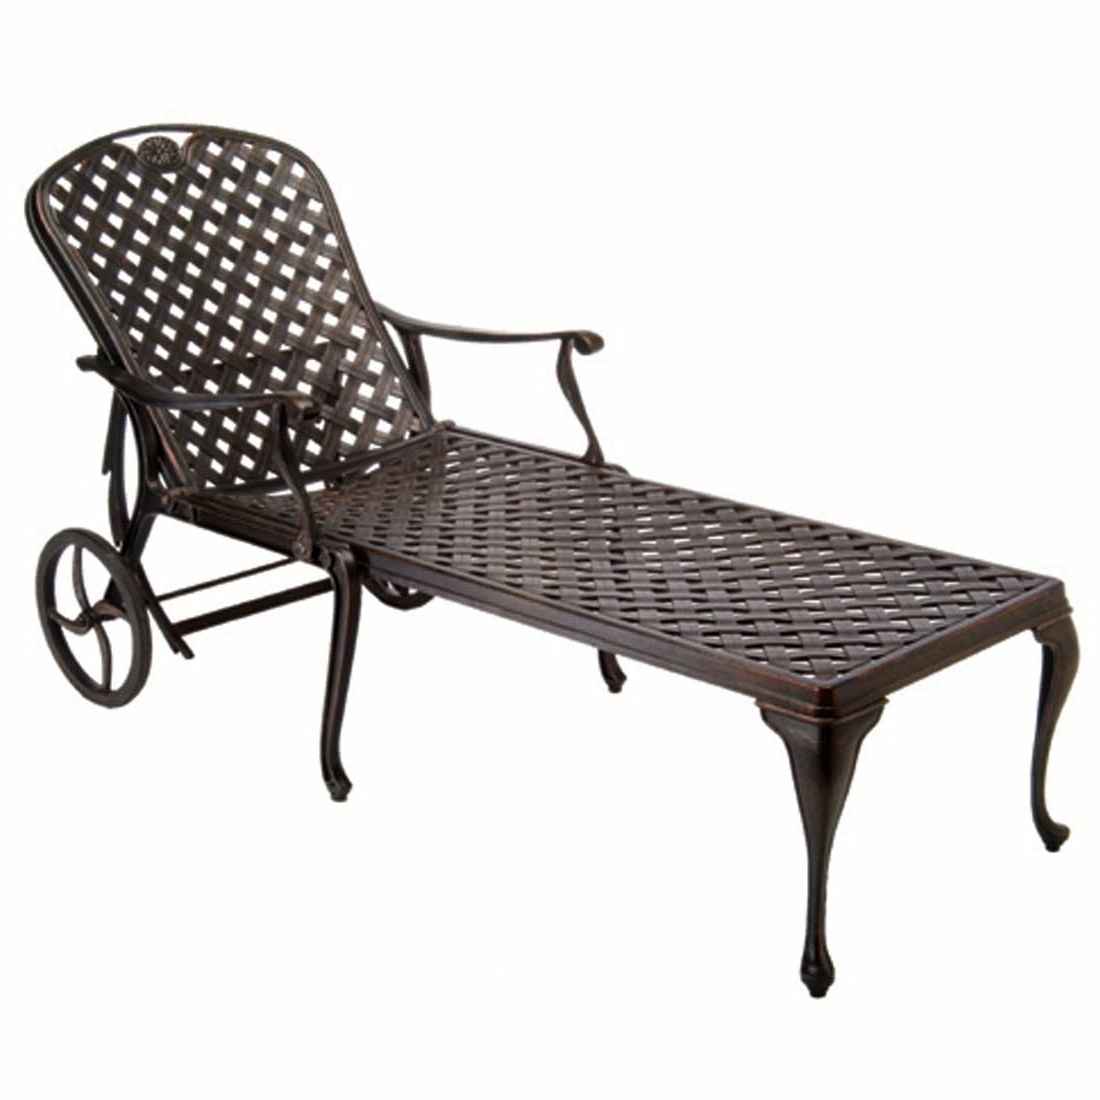 Recent Cast Aluminum Chaise Lounges With Wheels With Regard To Provance Metal Chaise Lounge Chairs (View 13 of 15)